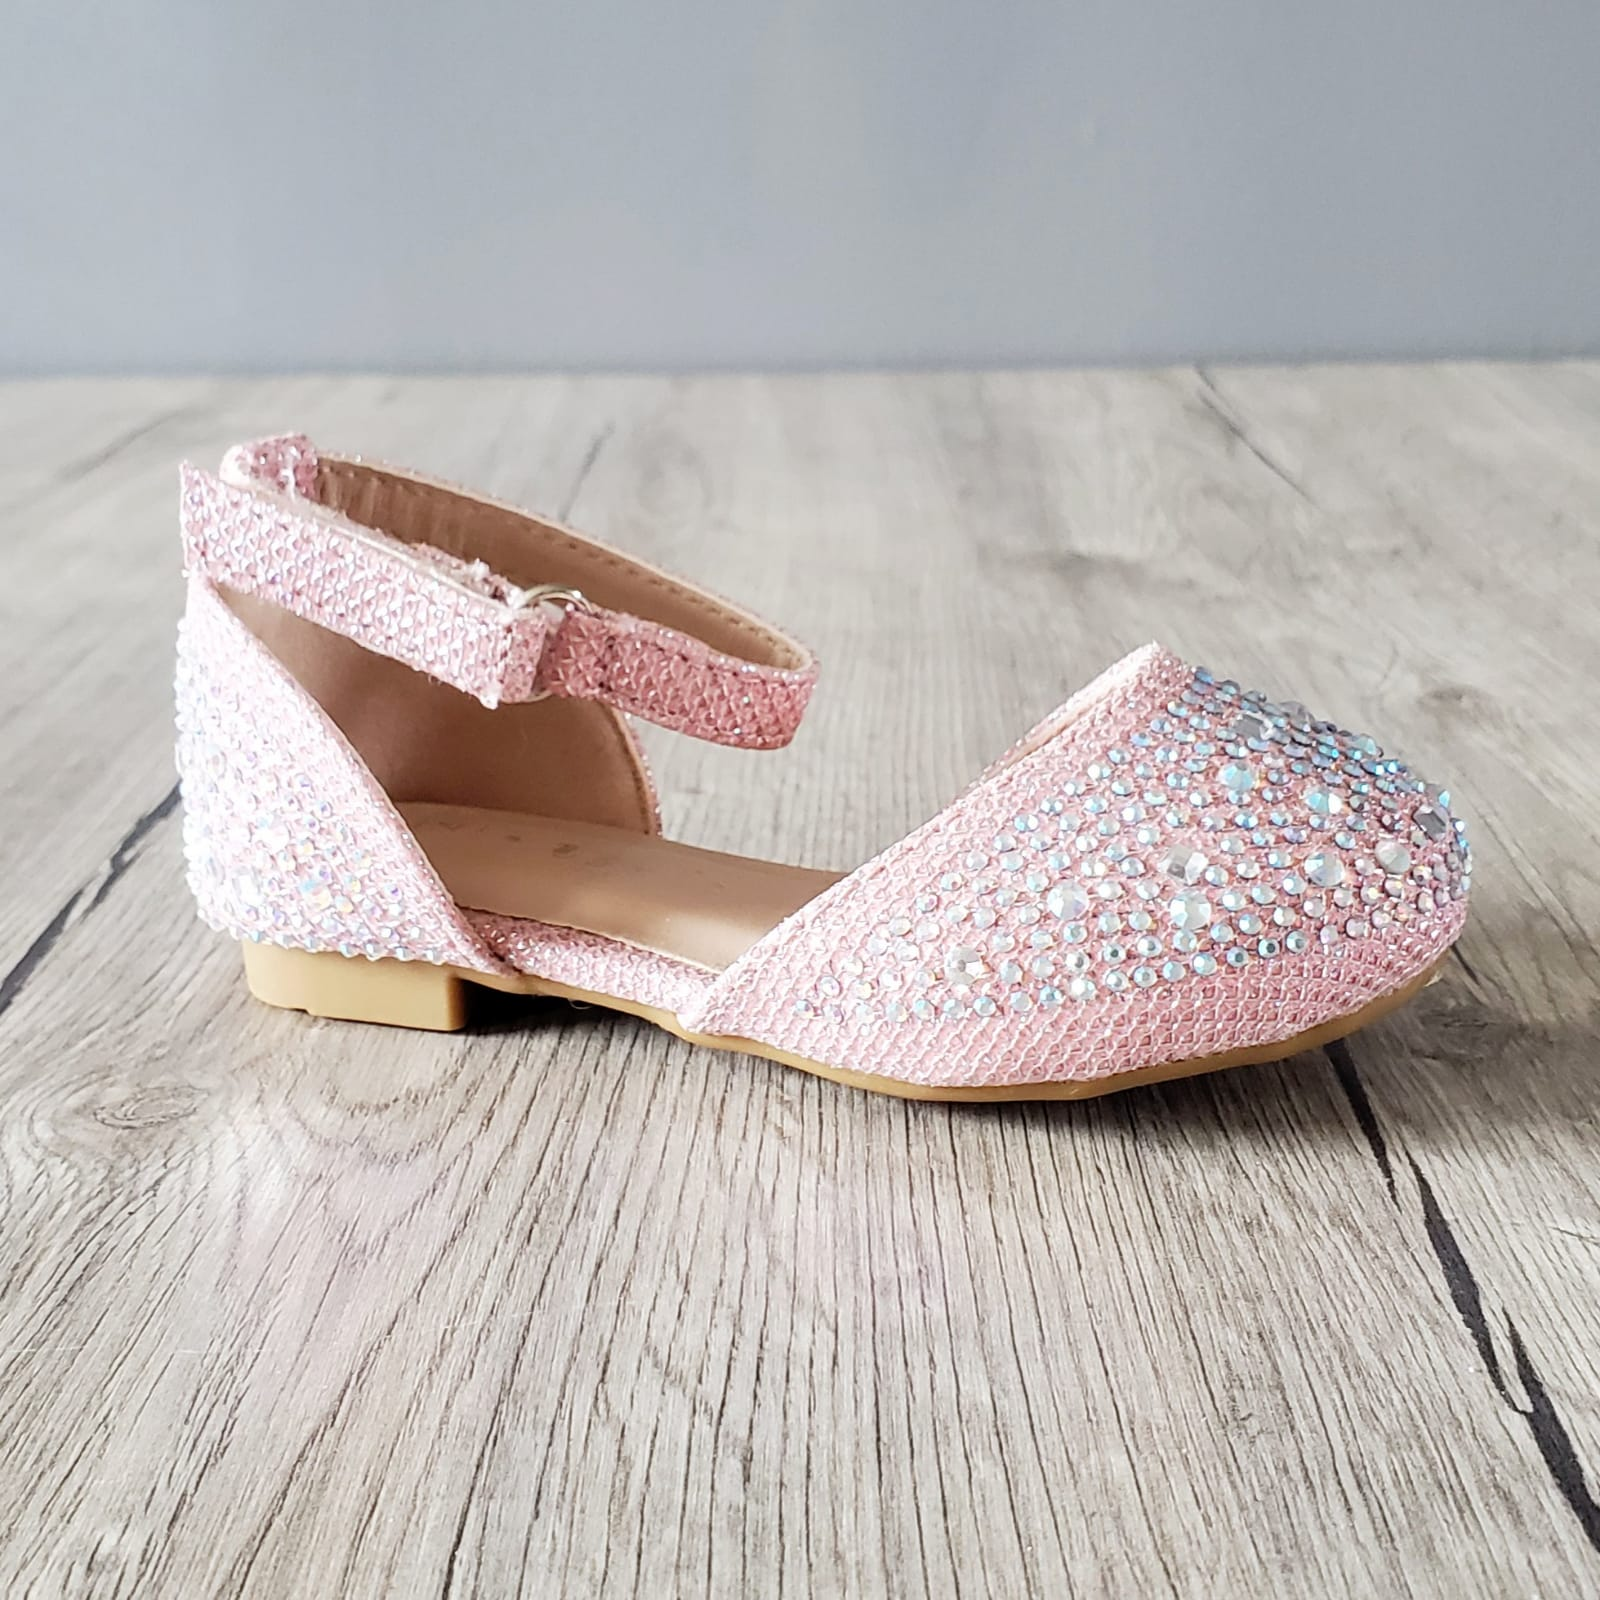 ballerina sandal shoes